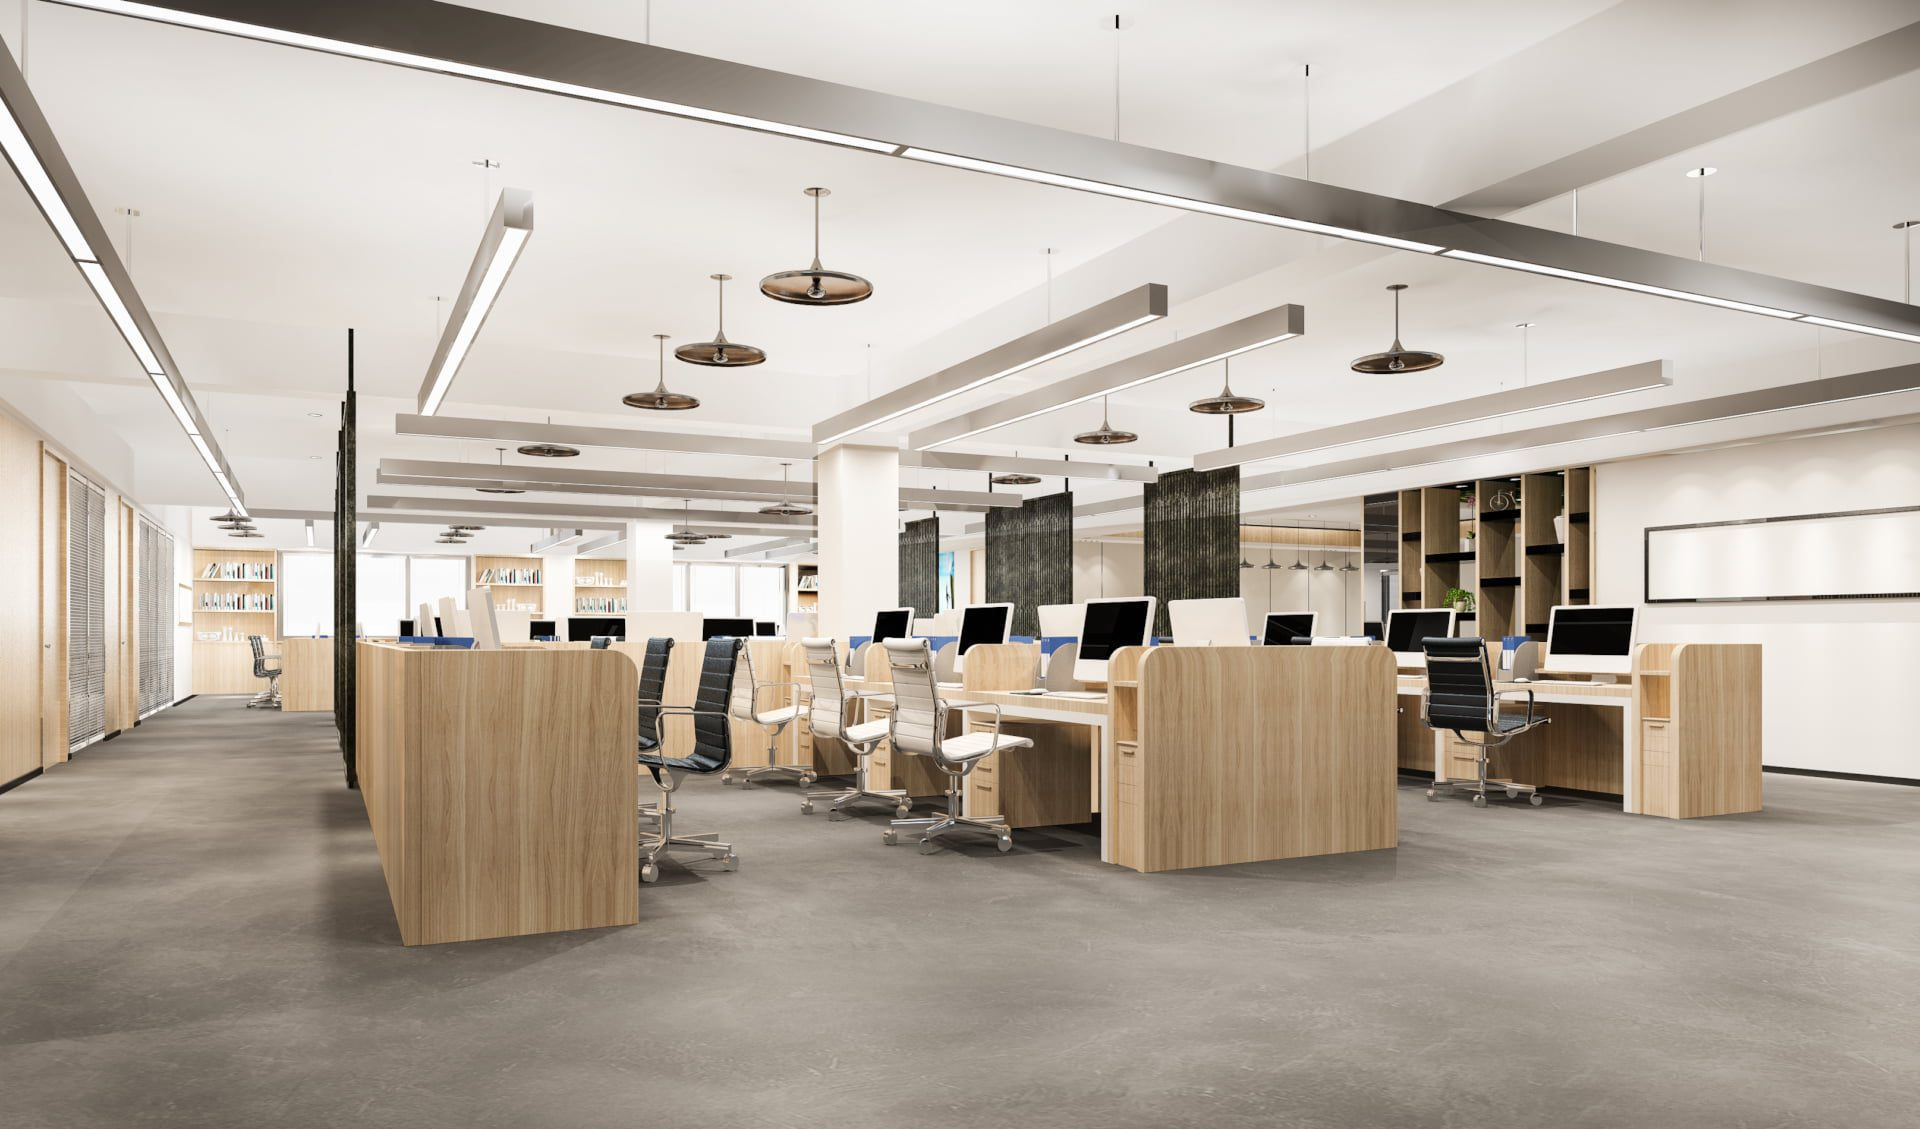 rendering of office space light and wood theme